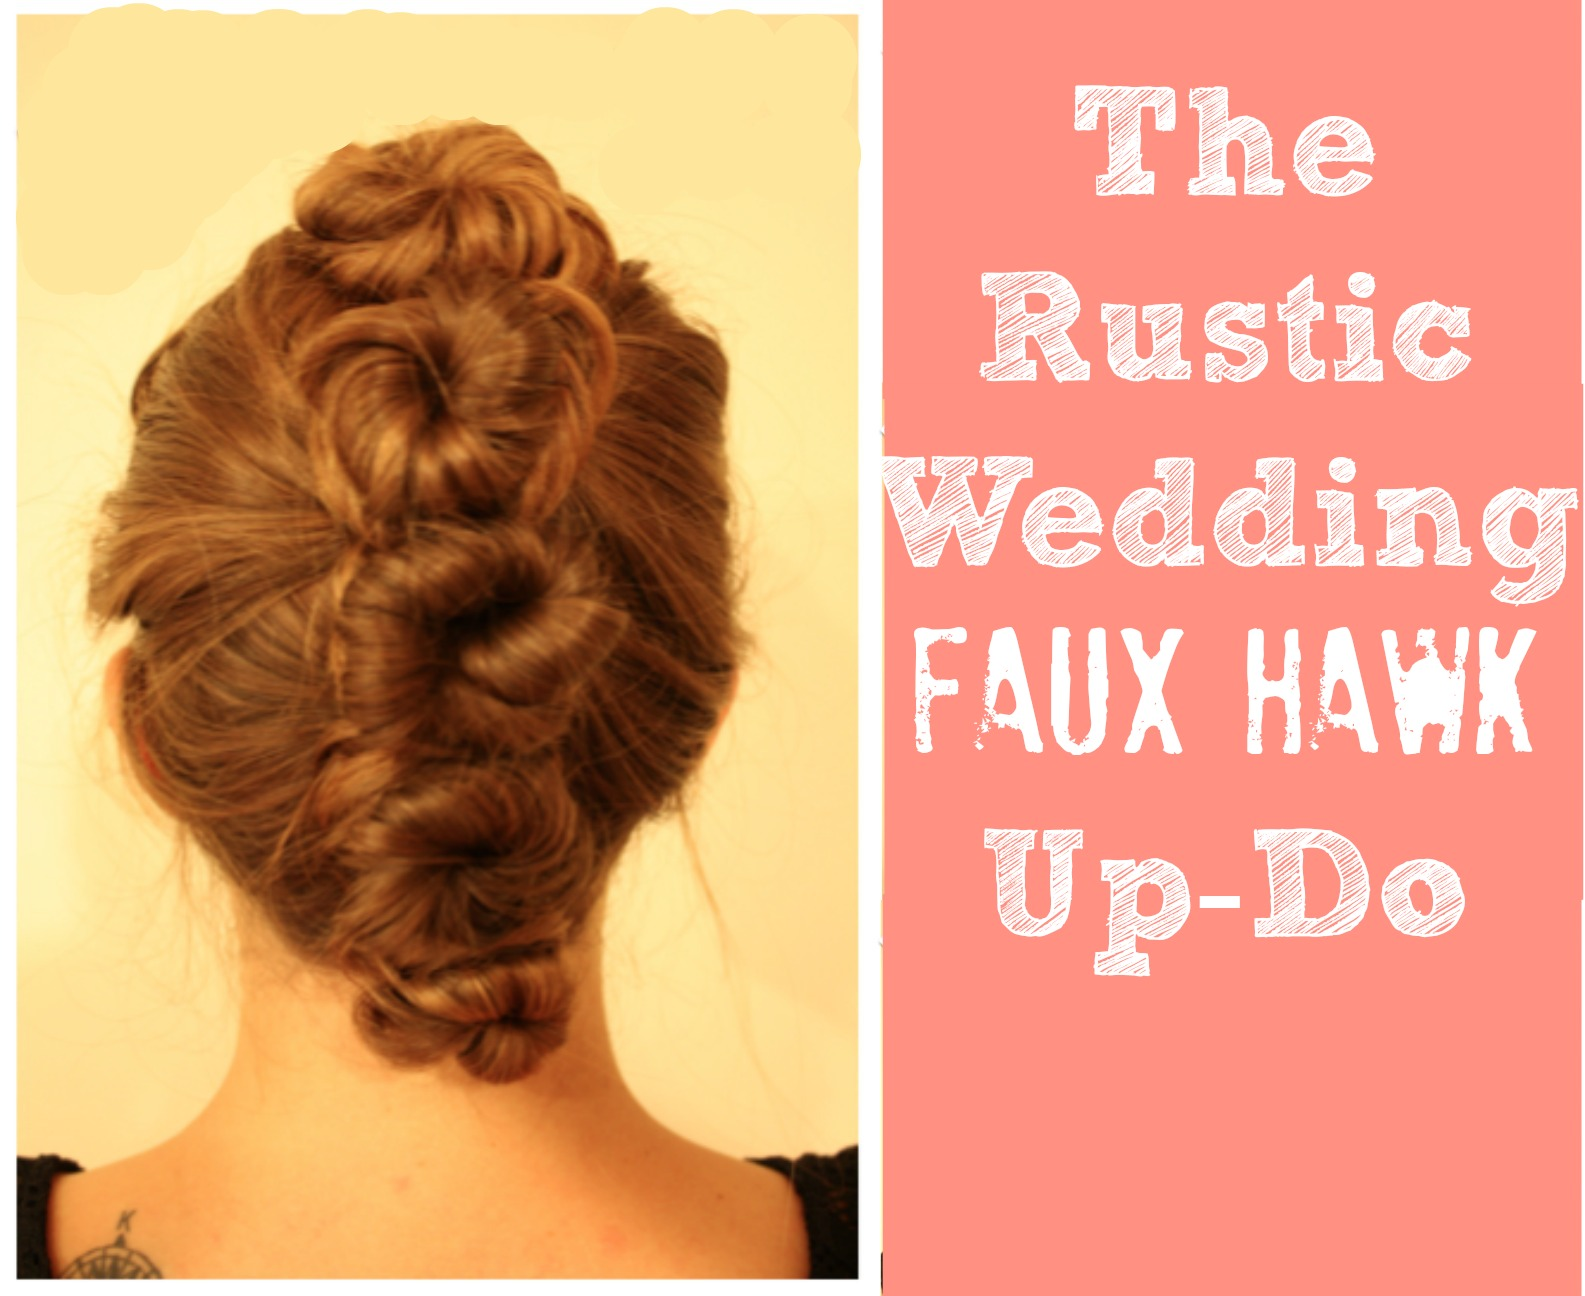 Rustic Wedding Hair Up Do